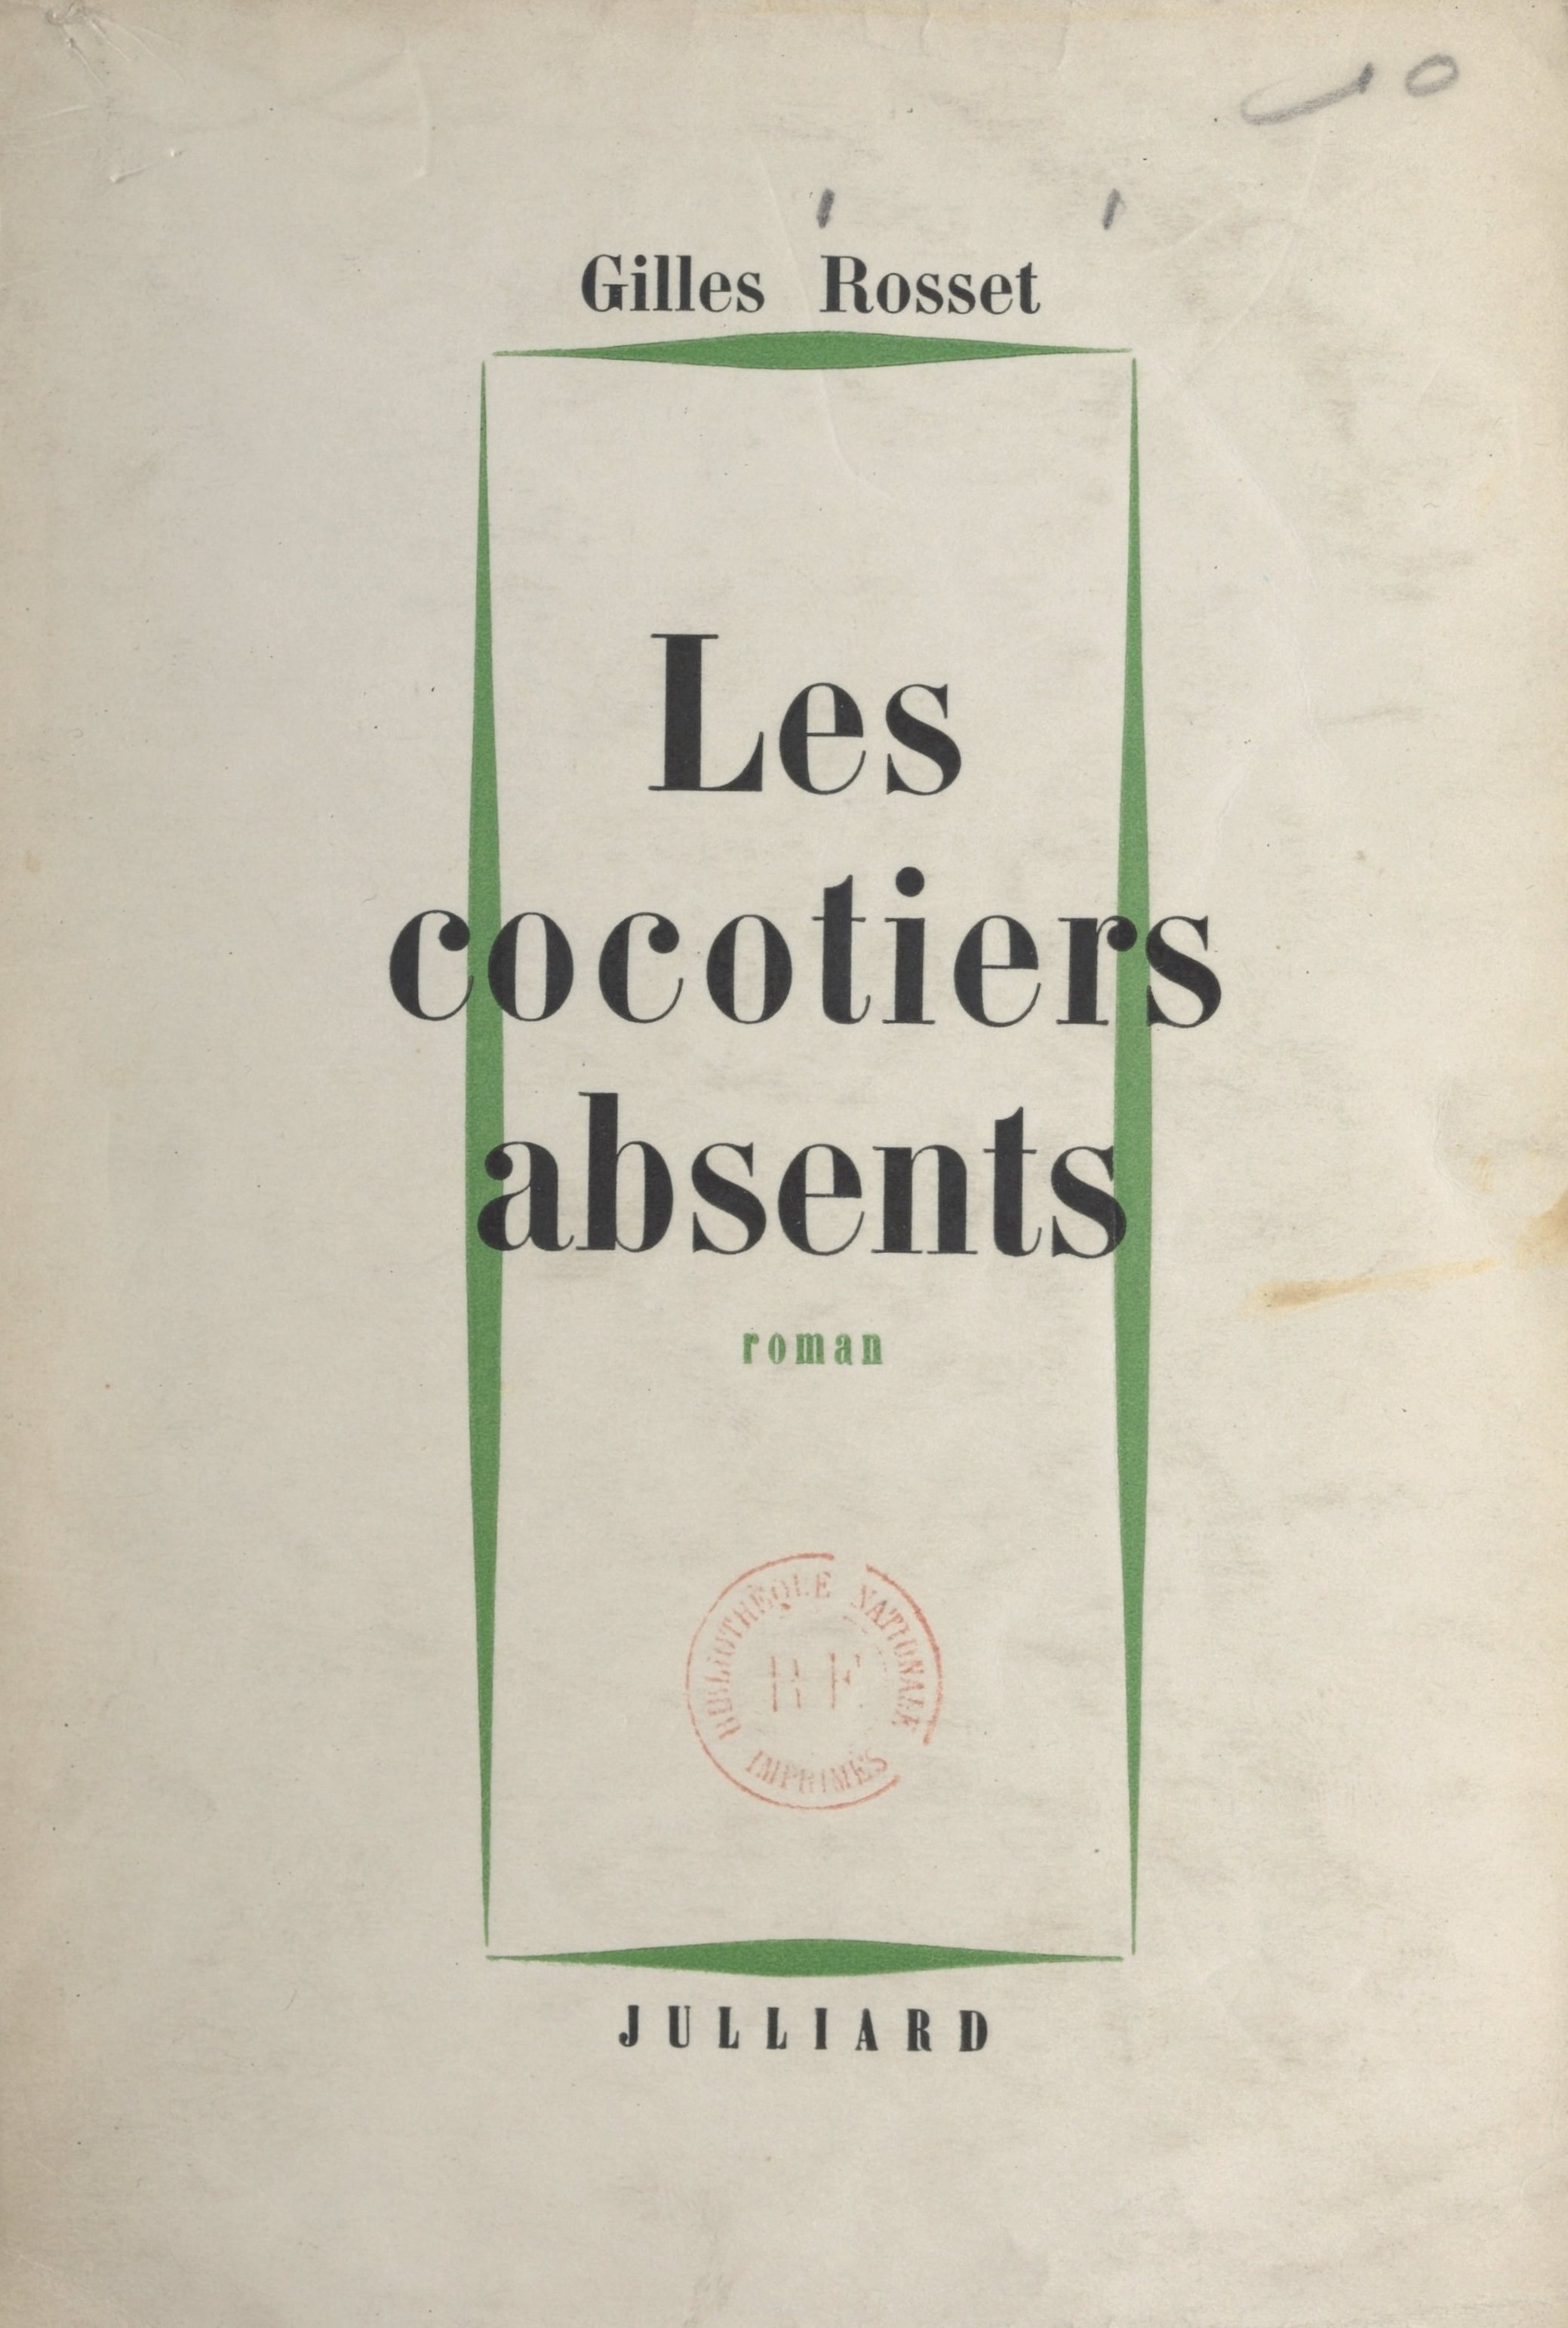 Les cocotiers absents